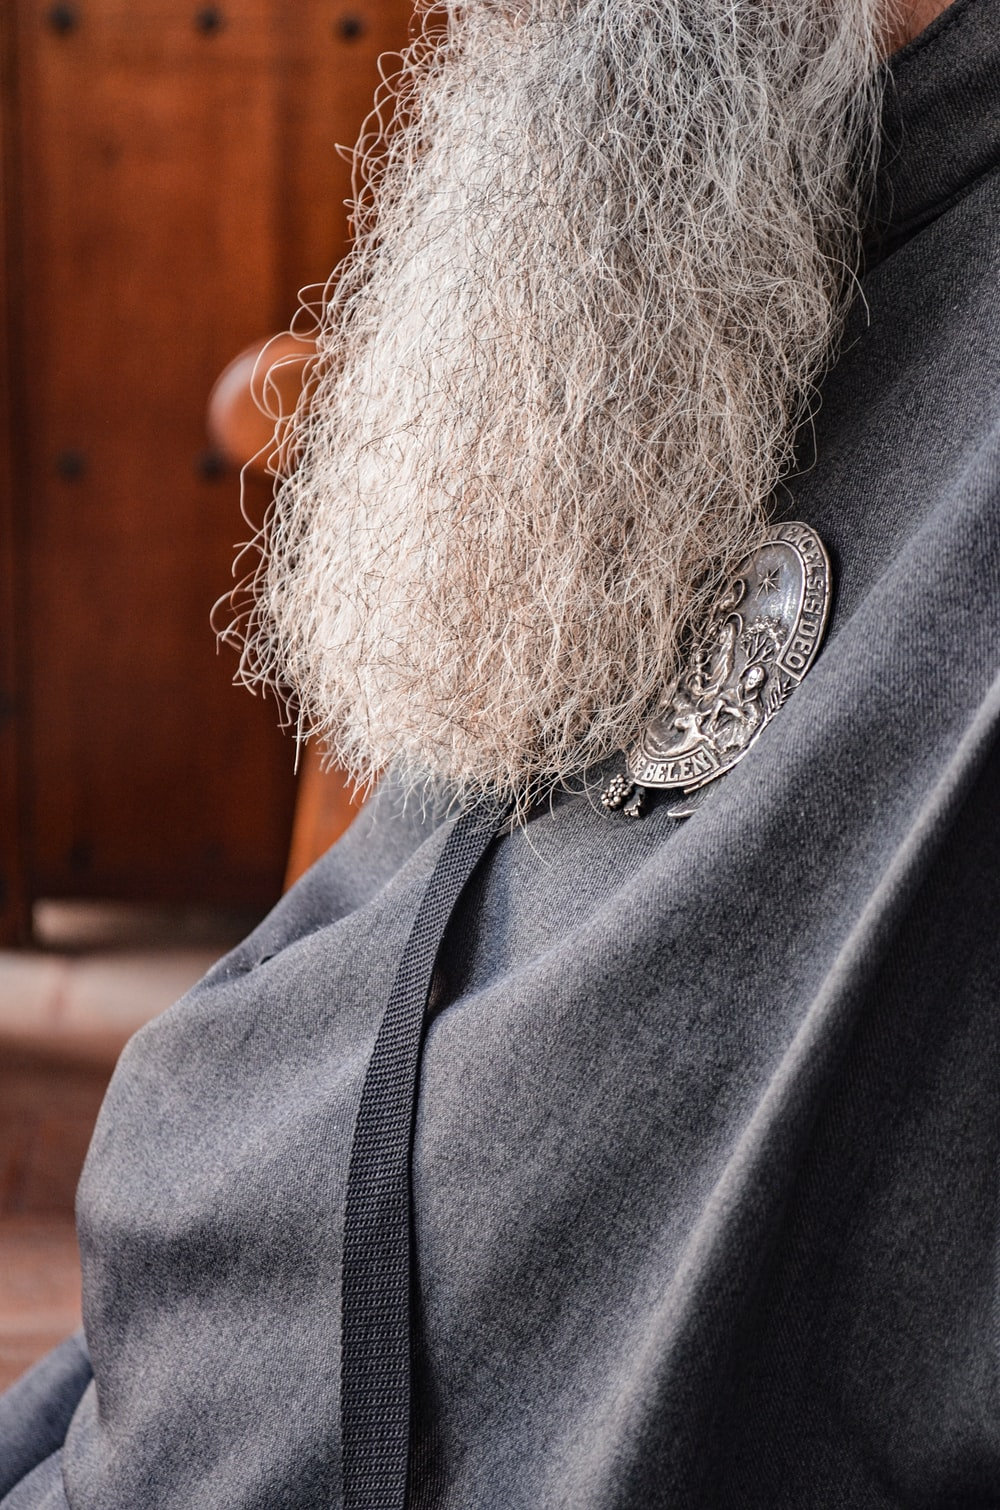 person wearing silver and black necklace